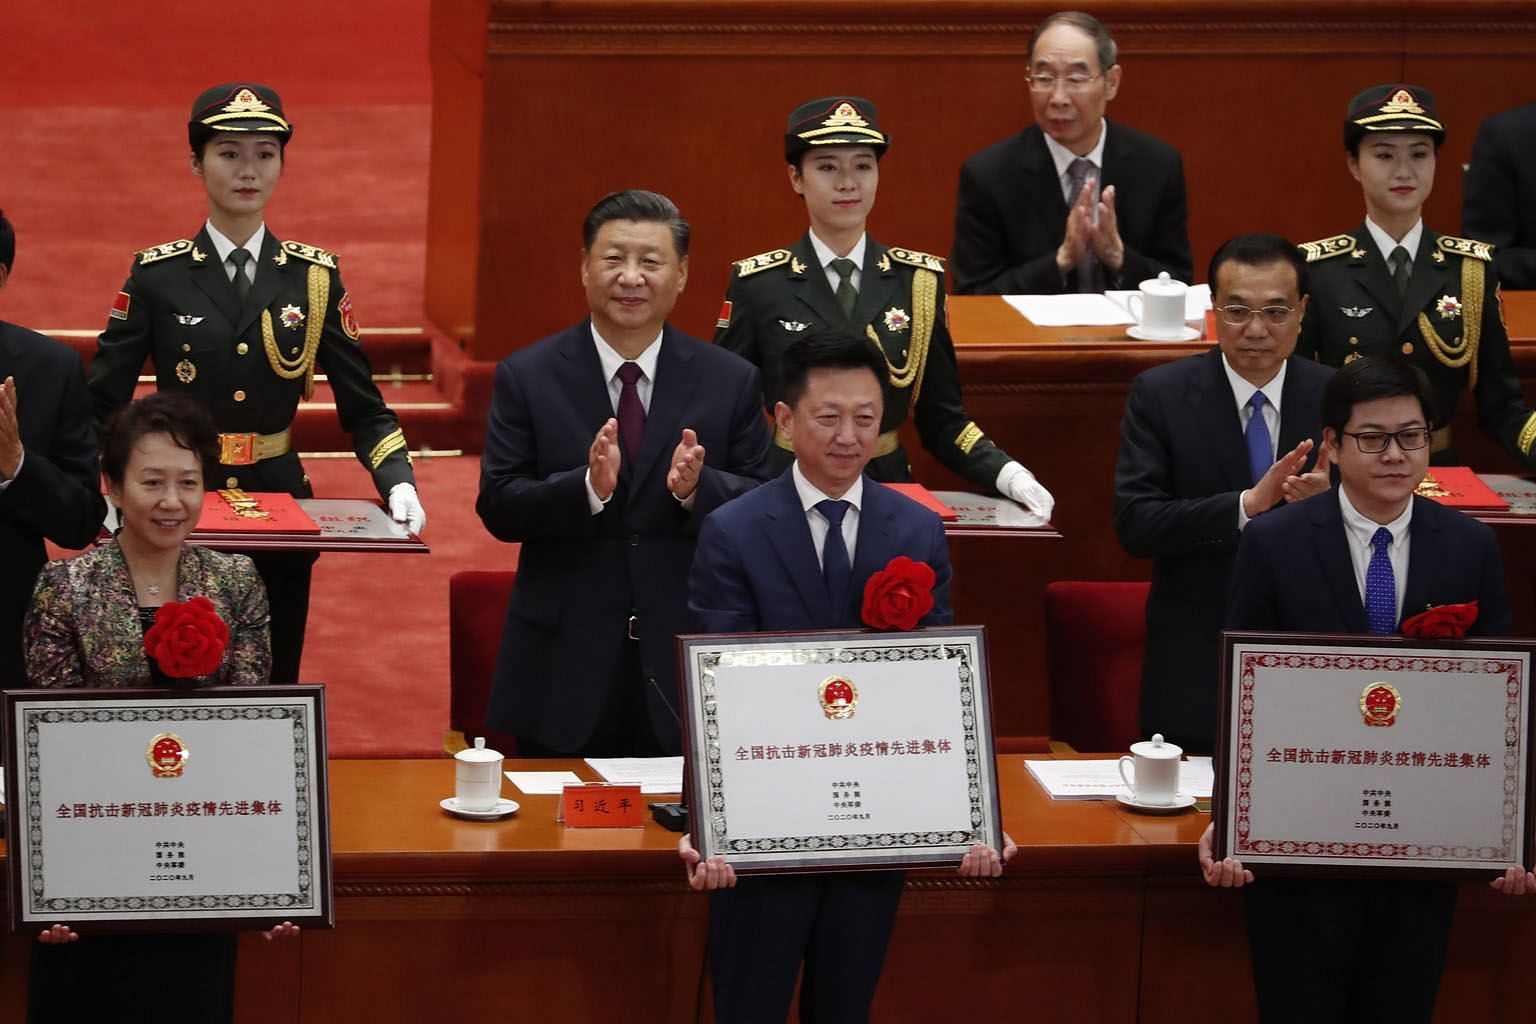 Chinese President Xi Jinping and Premier Li Keqiang (both middle row) clapping as the country bestowed honours on the people who contributed to the fight against the coronavirus. More than 2,000 people were given awards at a ceremony held at the Grea